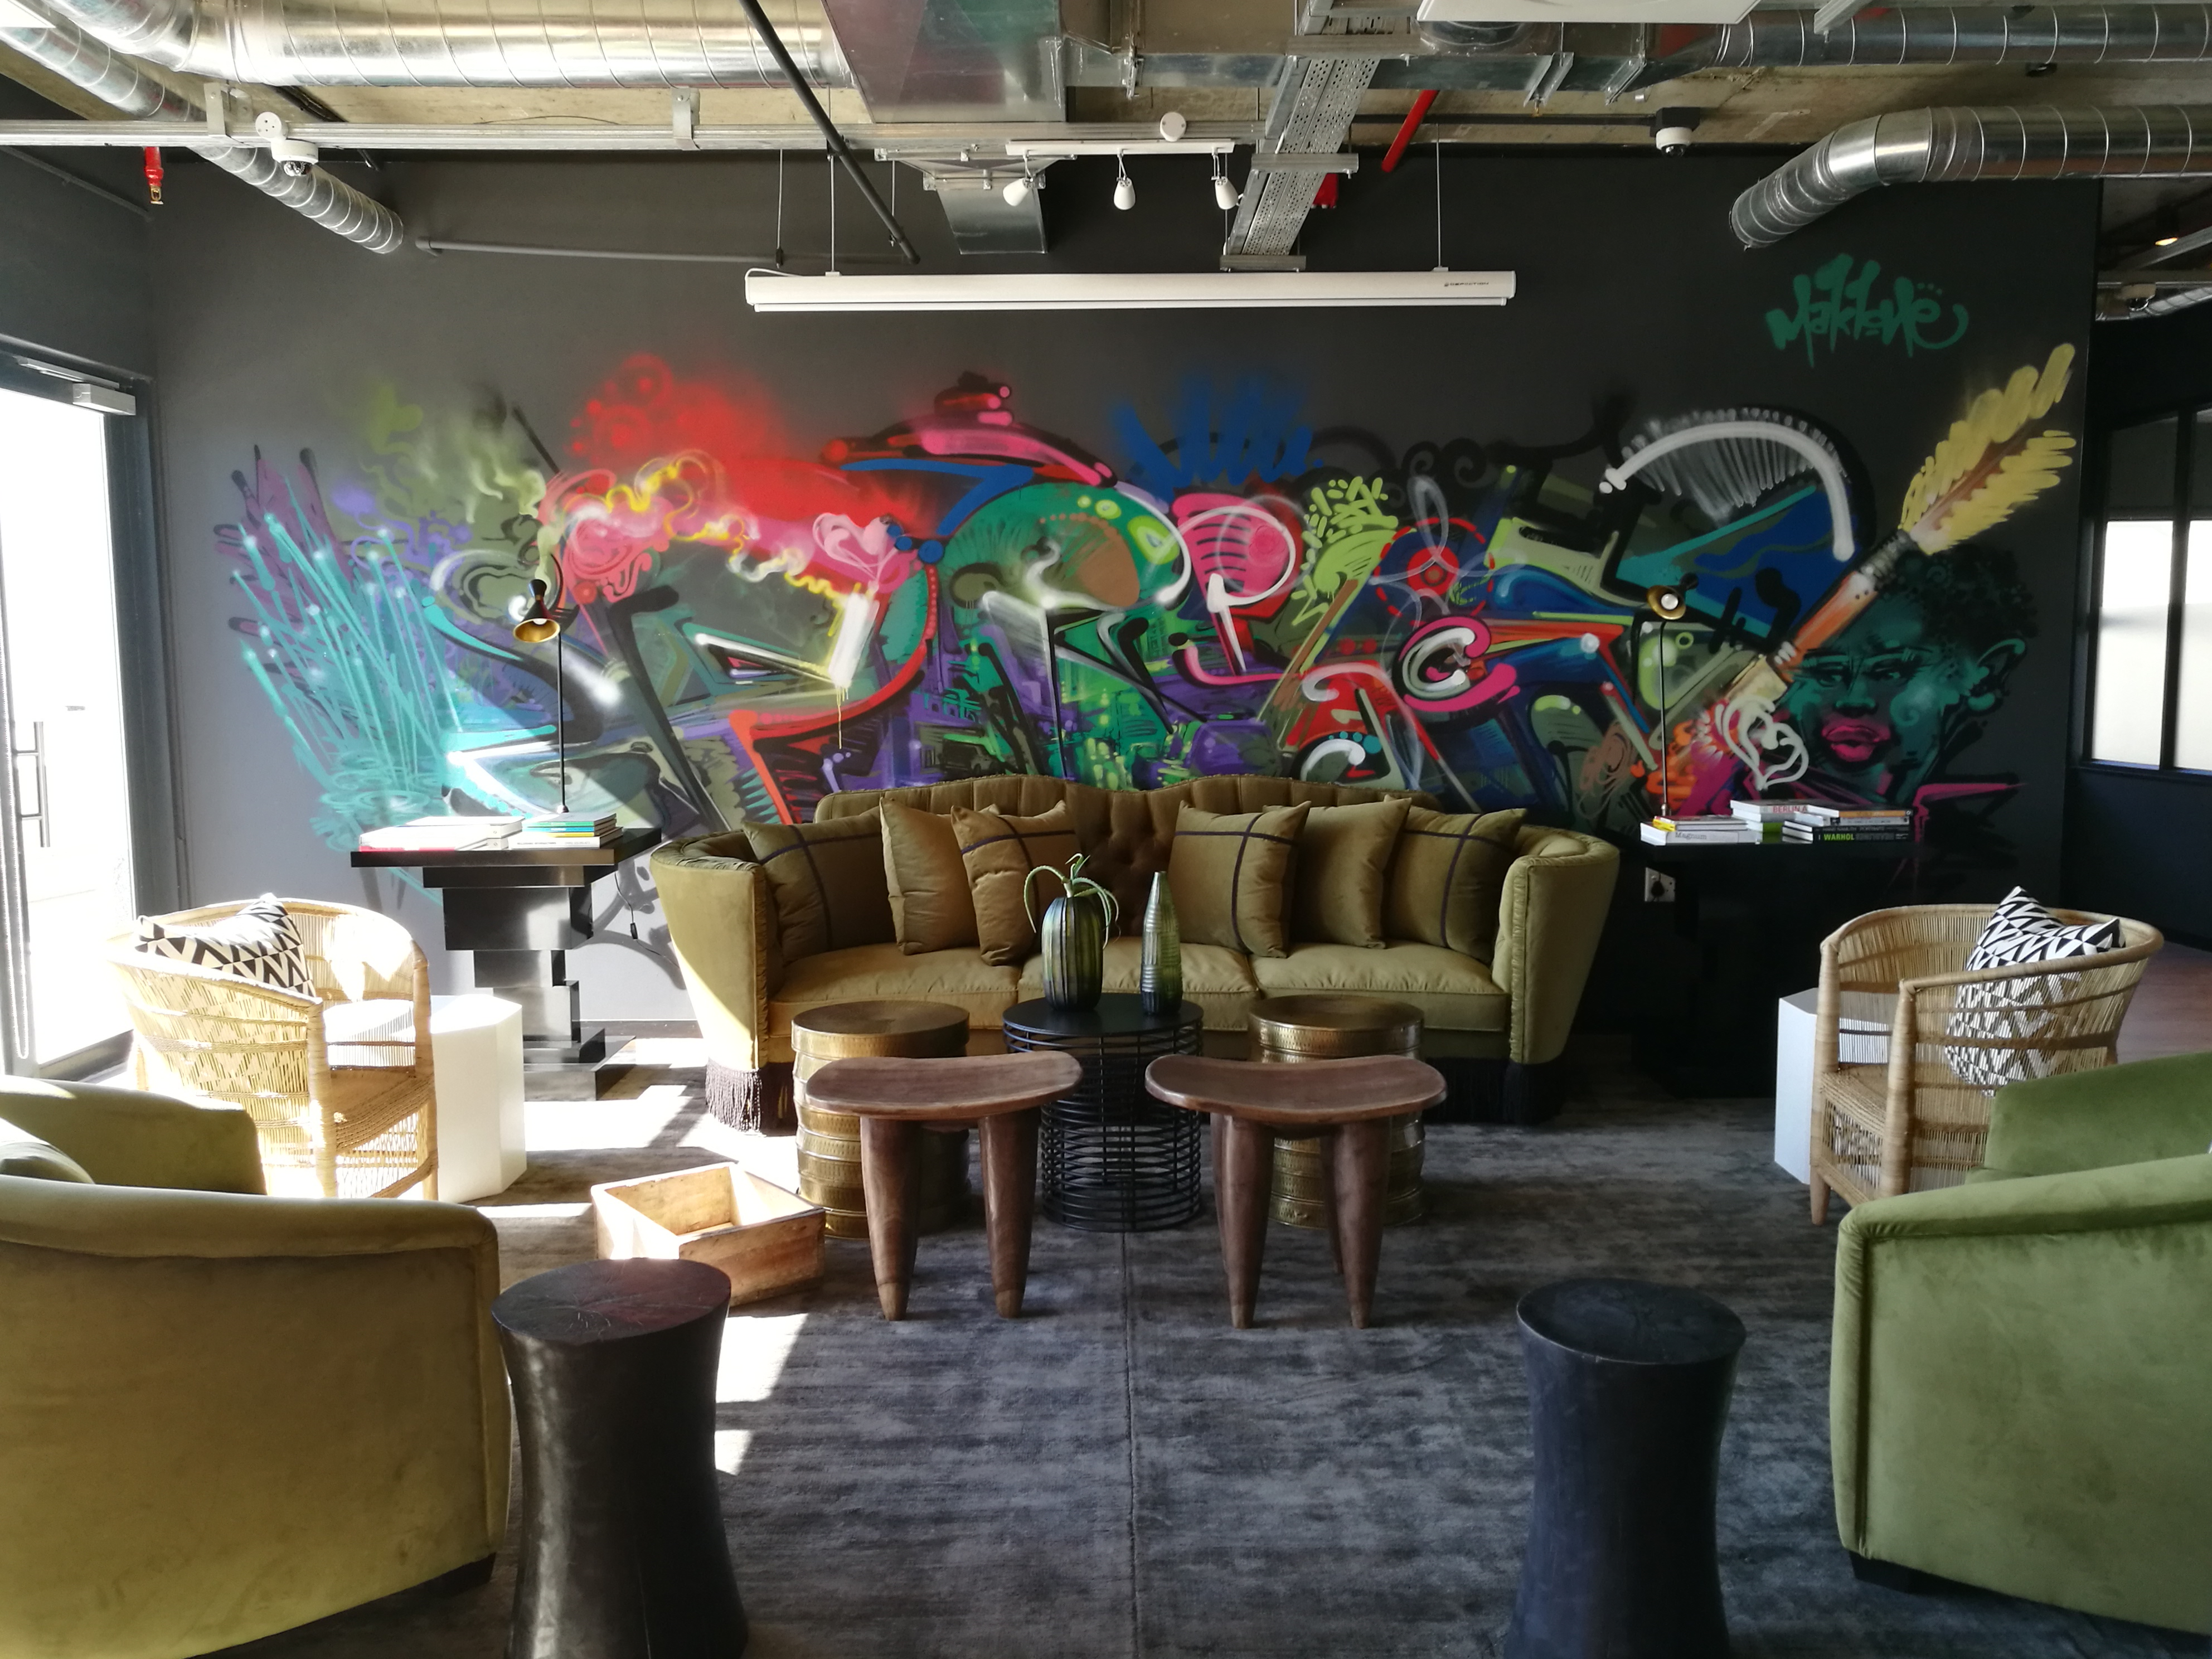 The lounge area at Work & Co